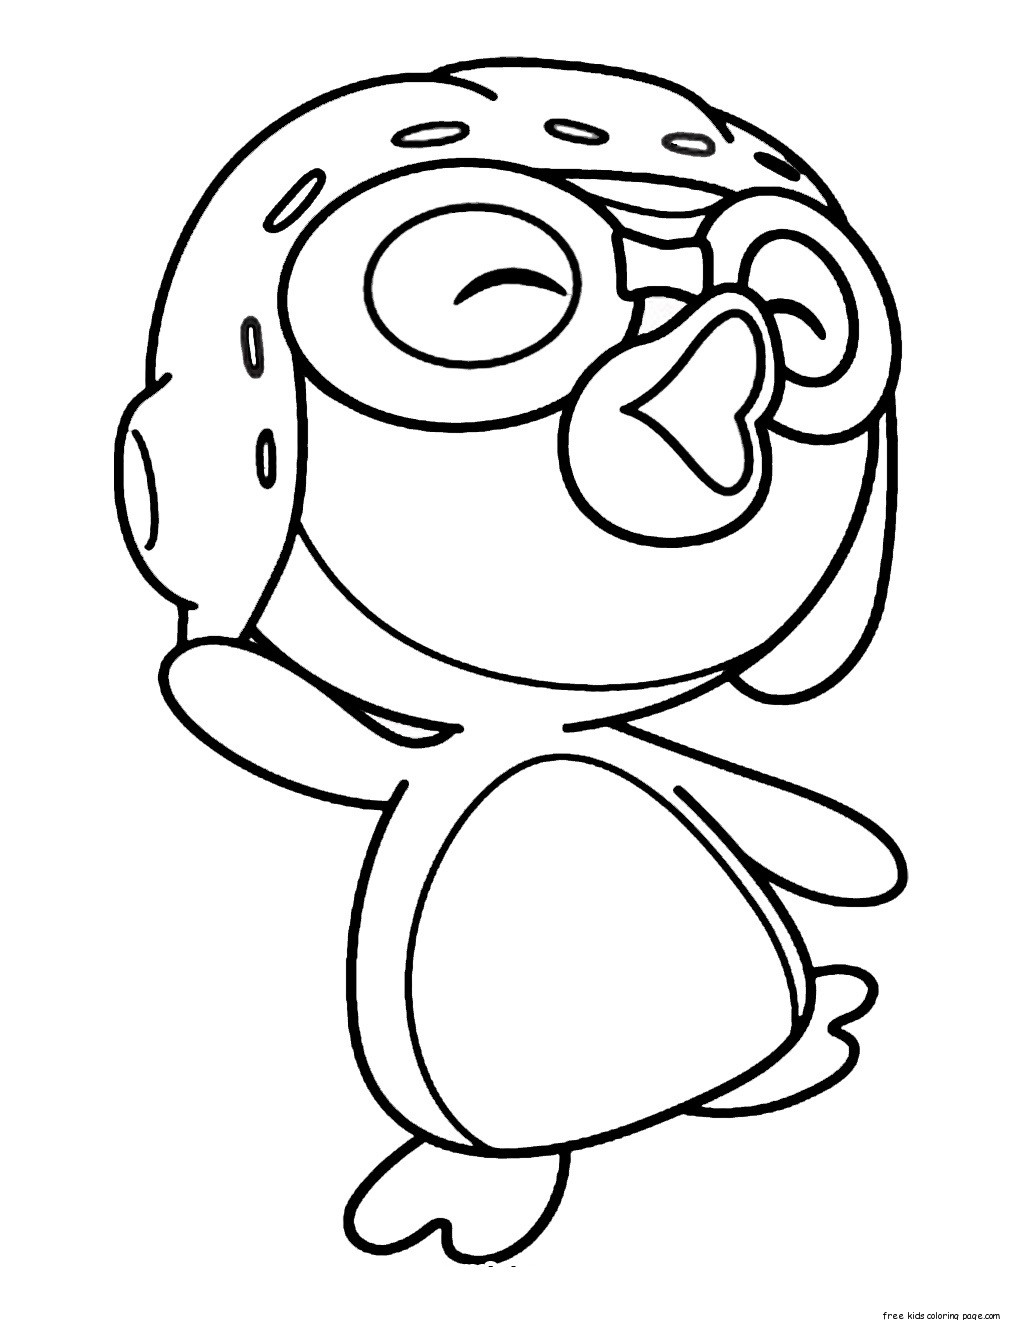 Printable pororo the little penguin coloring pages for kidsFree.